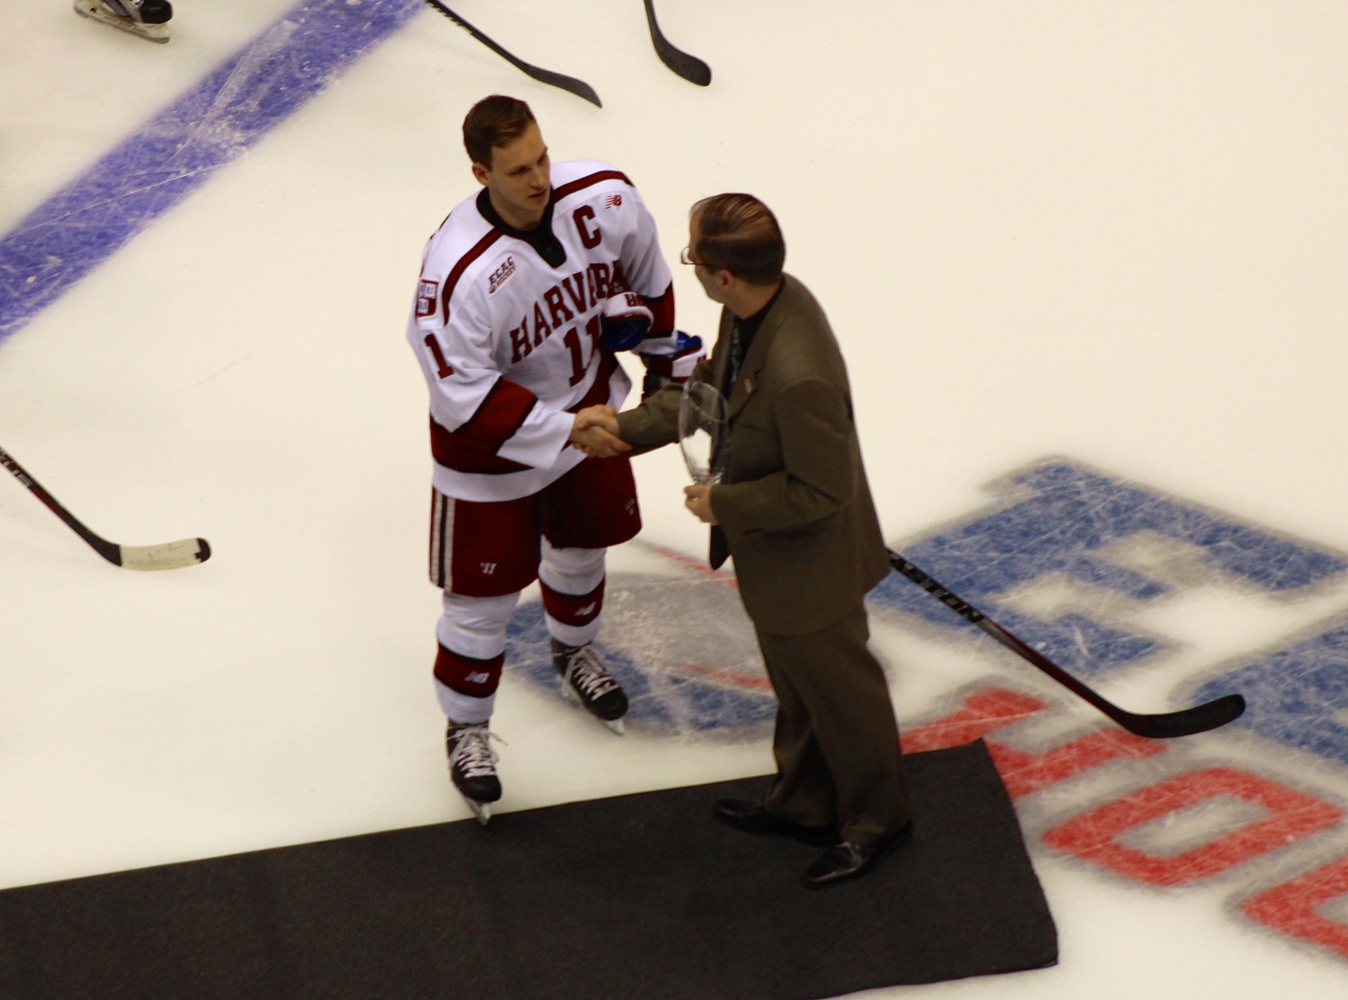 Kyle Criscuolo was honored as the ECAC Student Athlete of the Year prior to Friday's game.